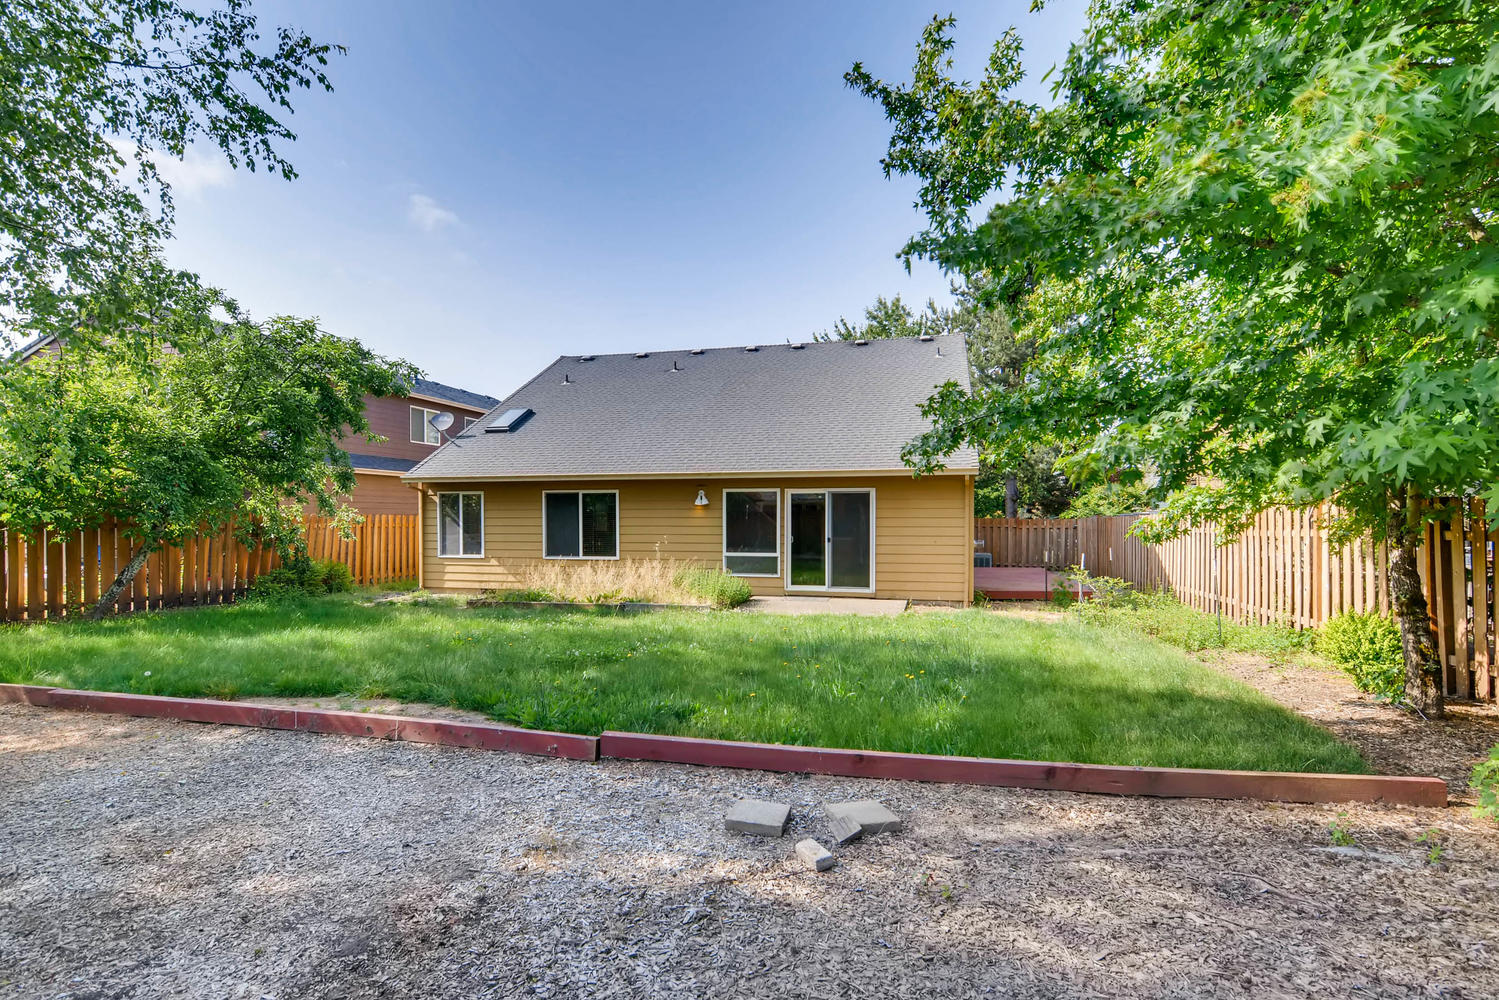 Photo of 1207 SE 14th Ave, Canby, OR, 97013